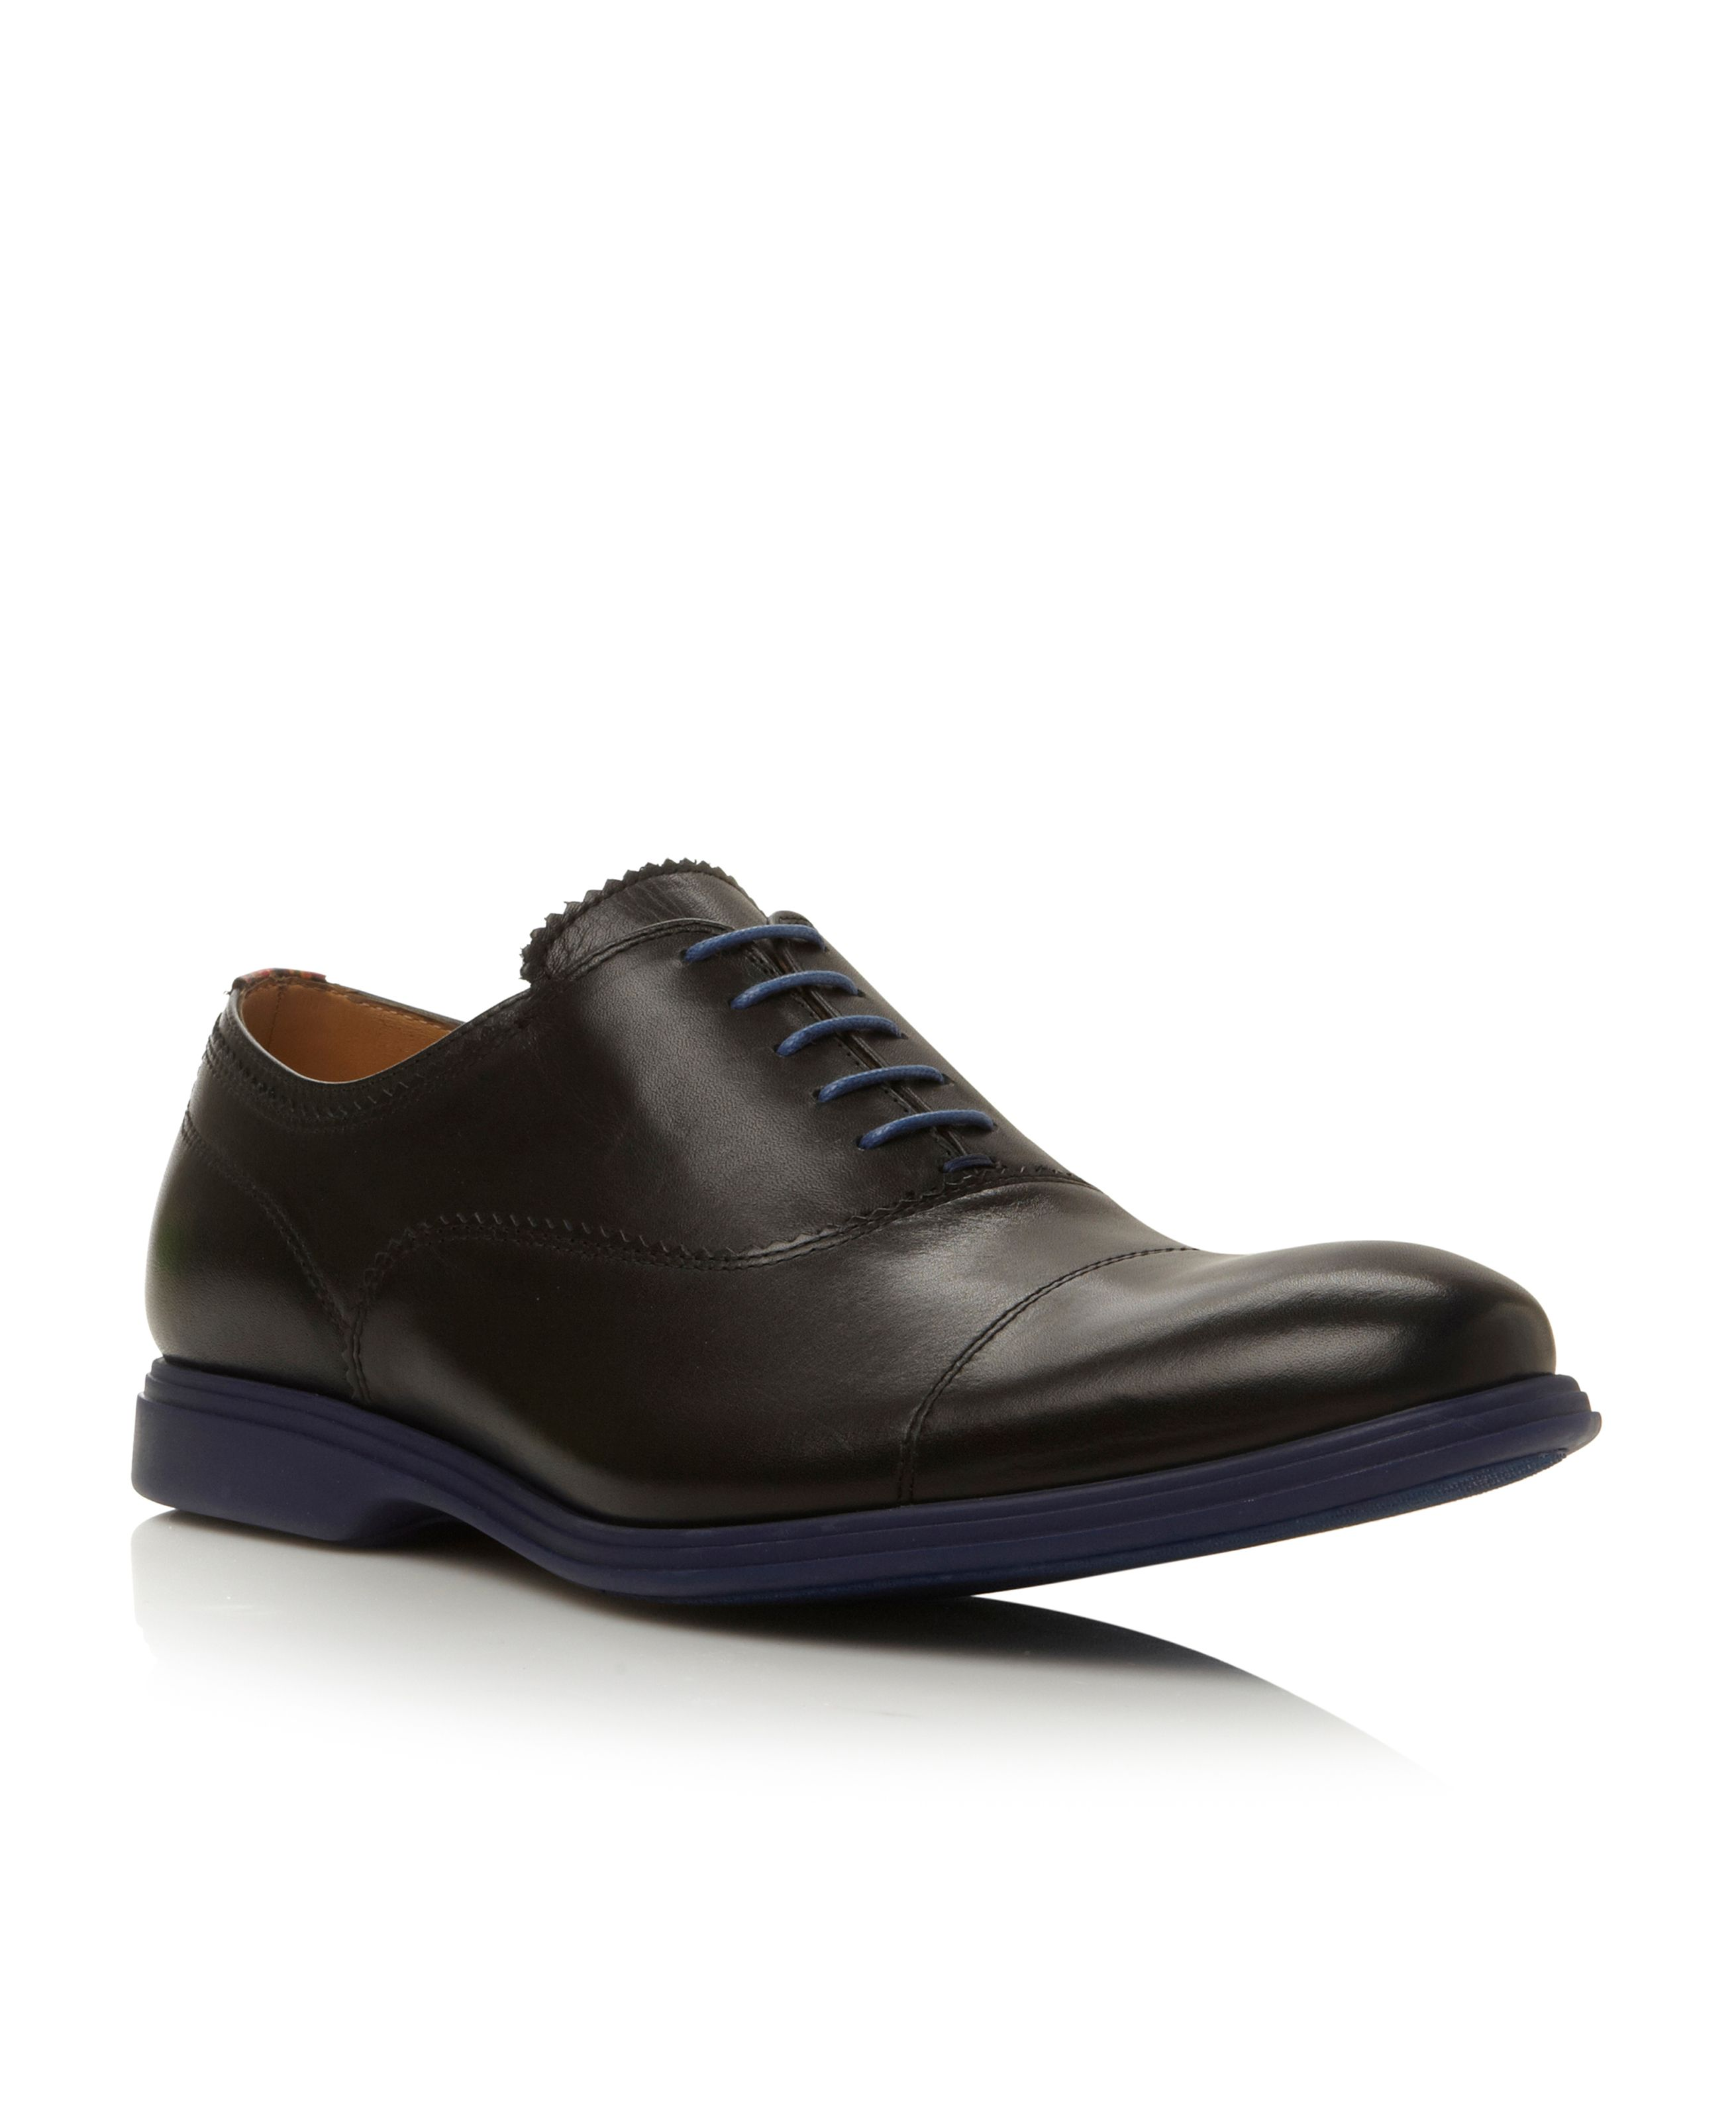 Seymour lace up contrast sole oxford shoes